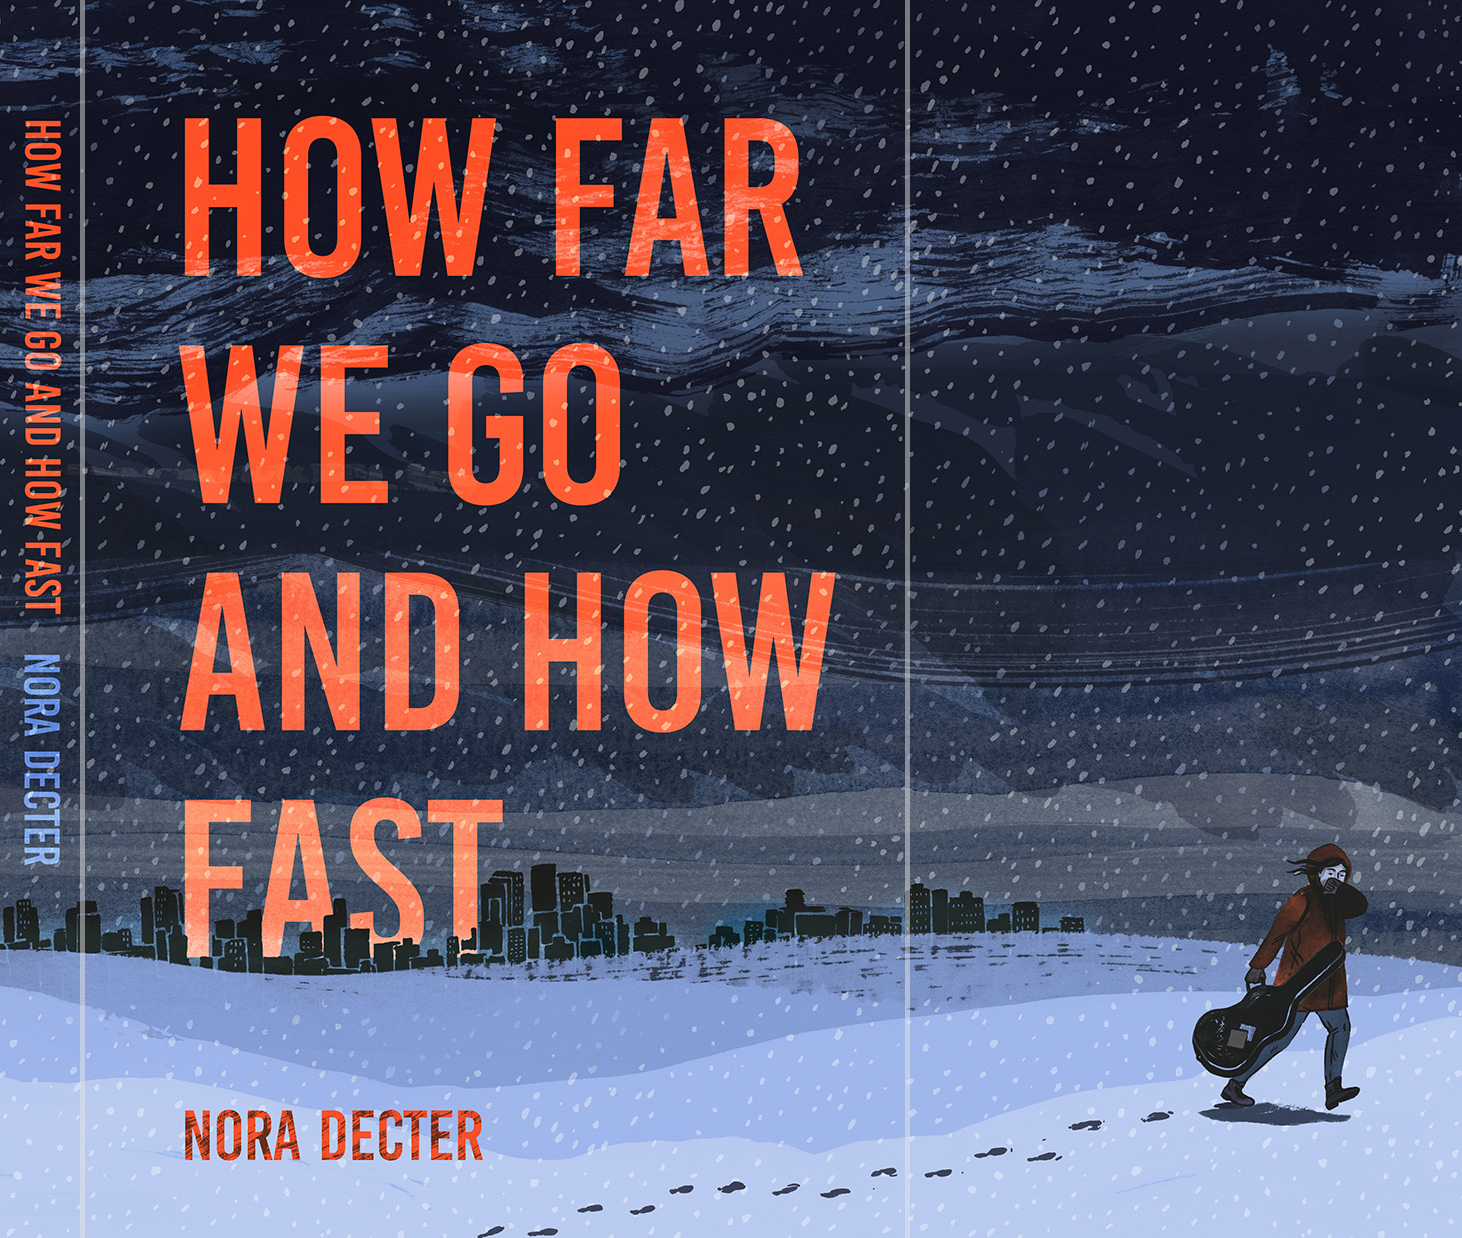 How Far We Go and How Fast, book cover, spine & flap